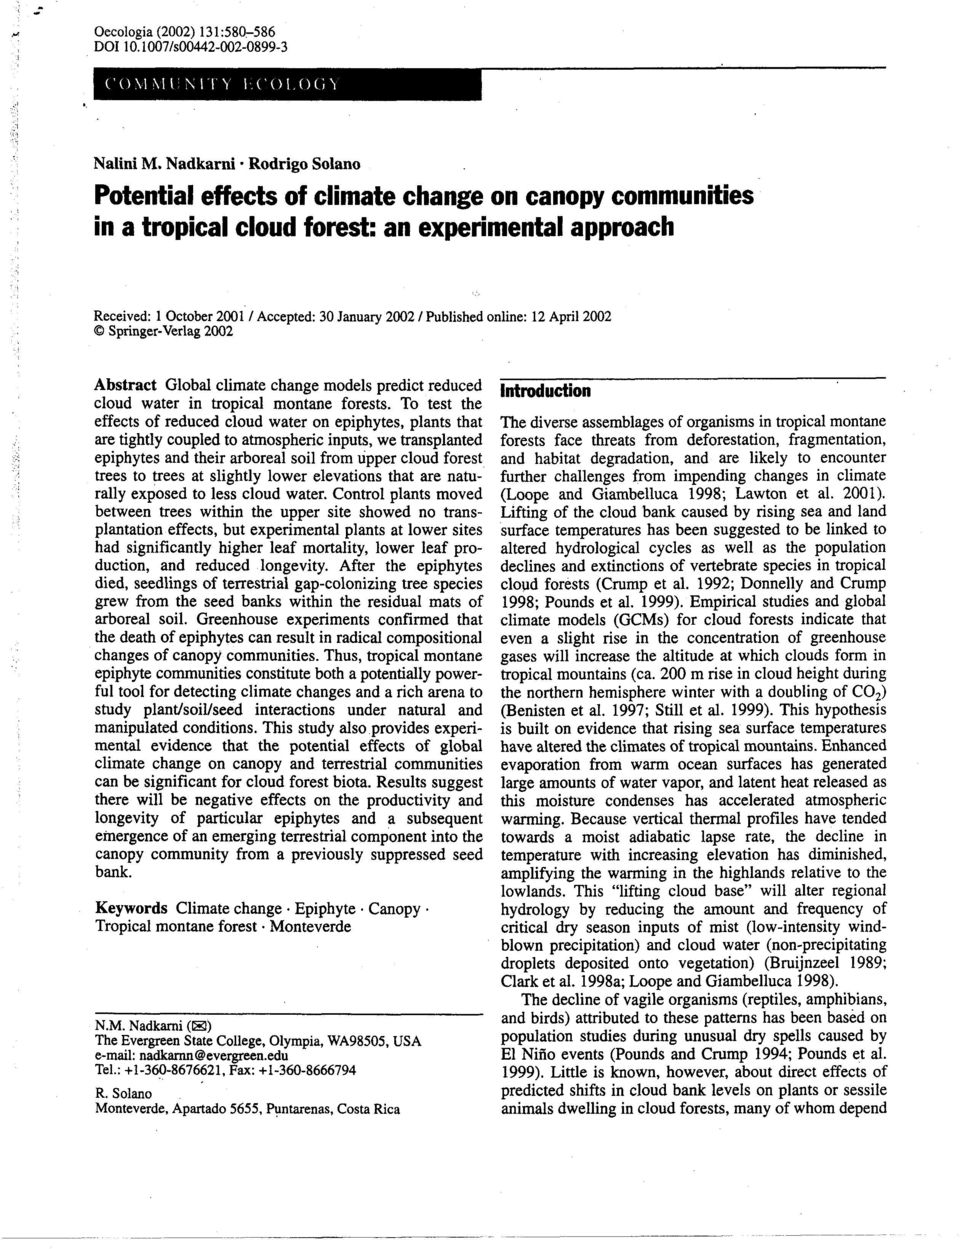 Published online: 12 April 2002 0 Springer-Verlag 2002 Abstract Global climate change models predict reduced cloud water in tropical montane forests.